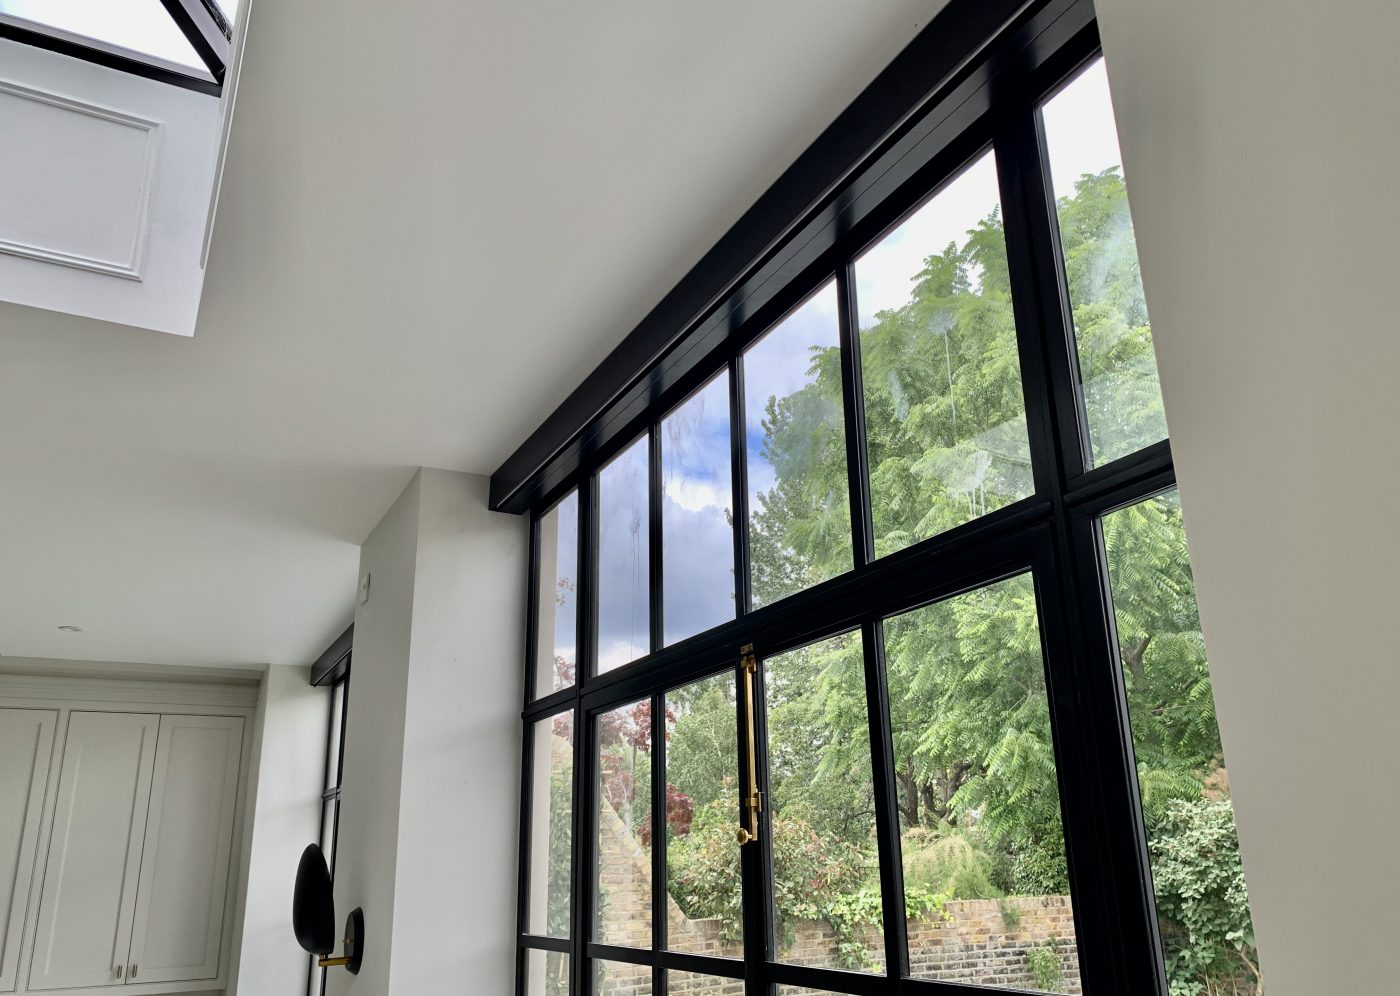 Electric Blinds For Crittall Windows Fitted in London by The Electric Blind Company